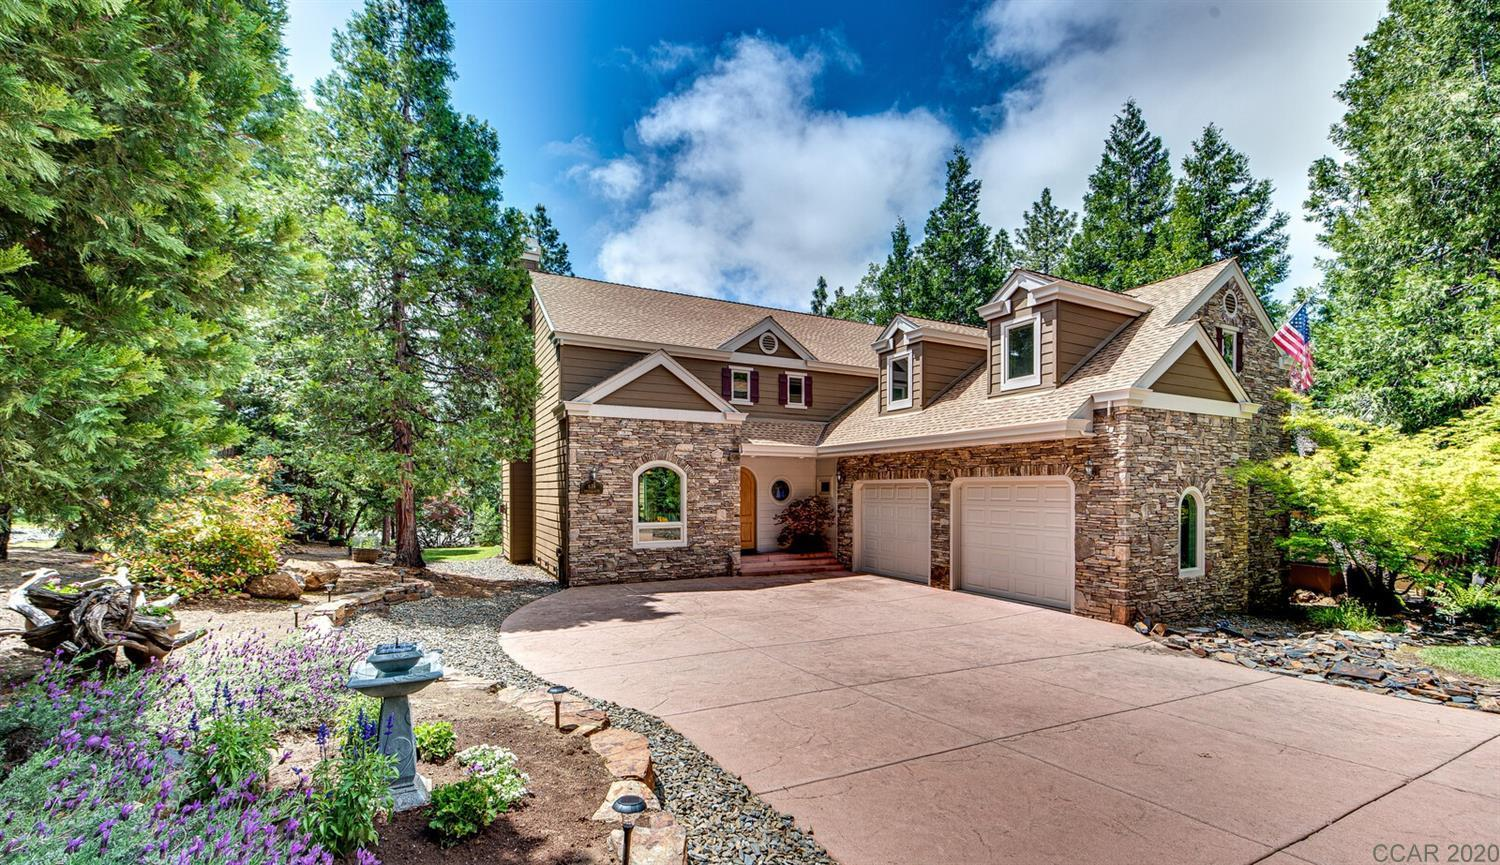 Exquisite custom built 3034 sq ft home, located on a quiet street in the gated community of Forest Meadows (one block from Clubhouse/Hilltop Park and minutes from downtown Murphys, wineries and golf). Main level includes: Dining Rm with custom beamed interior pergola, Living Rm with cathedral ceilings and dramatic stone fireplace with gas insert, Gourmet Kitchen with quartz countertops and gas cooktop & oven, walk-in Pantry, Breakfast Nook, Master Suite with jetted tub and walk-in closet, Laundry Rm/Office, 1/2 Bath, Mudroom and 600 sq ft garage. Beautifully crafted staircase to upper level which includes: Spacious Loft (optl den/game/bonus room) with deck access, two additional Master Suites and an Office (optl 4th bedroom/nursery). Features: Level .3 acre lot, level stamped concrete driveway and patio, Hardie Board siding with stone exterior accents, custom window coverings and lighting, energy efficient multi zoned heating/air with radiant heat flooring, attic whole house fan, Milgard windows, ceiling fans throughout, security system and large equipment/storage room. Community amenities include: security gate/patrols, clubhouse, two parks, pools, tennis/pickleball/bocce courts, playgrounds, dog park, trails and so much more. So many features  - see attached list for details.